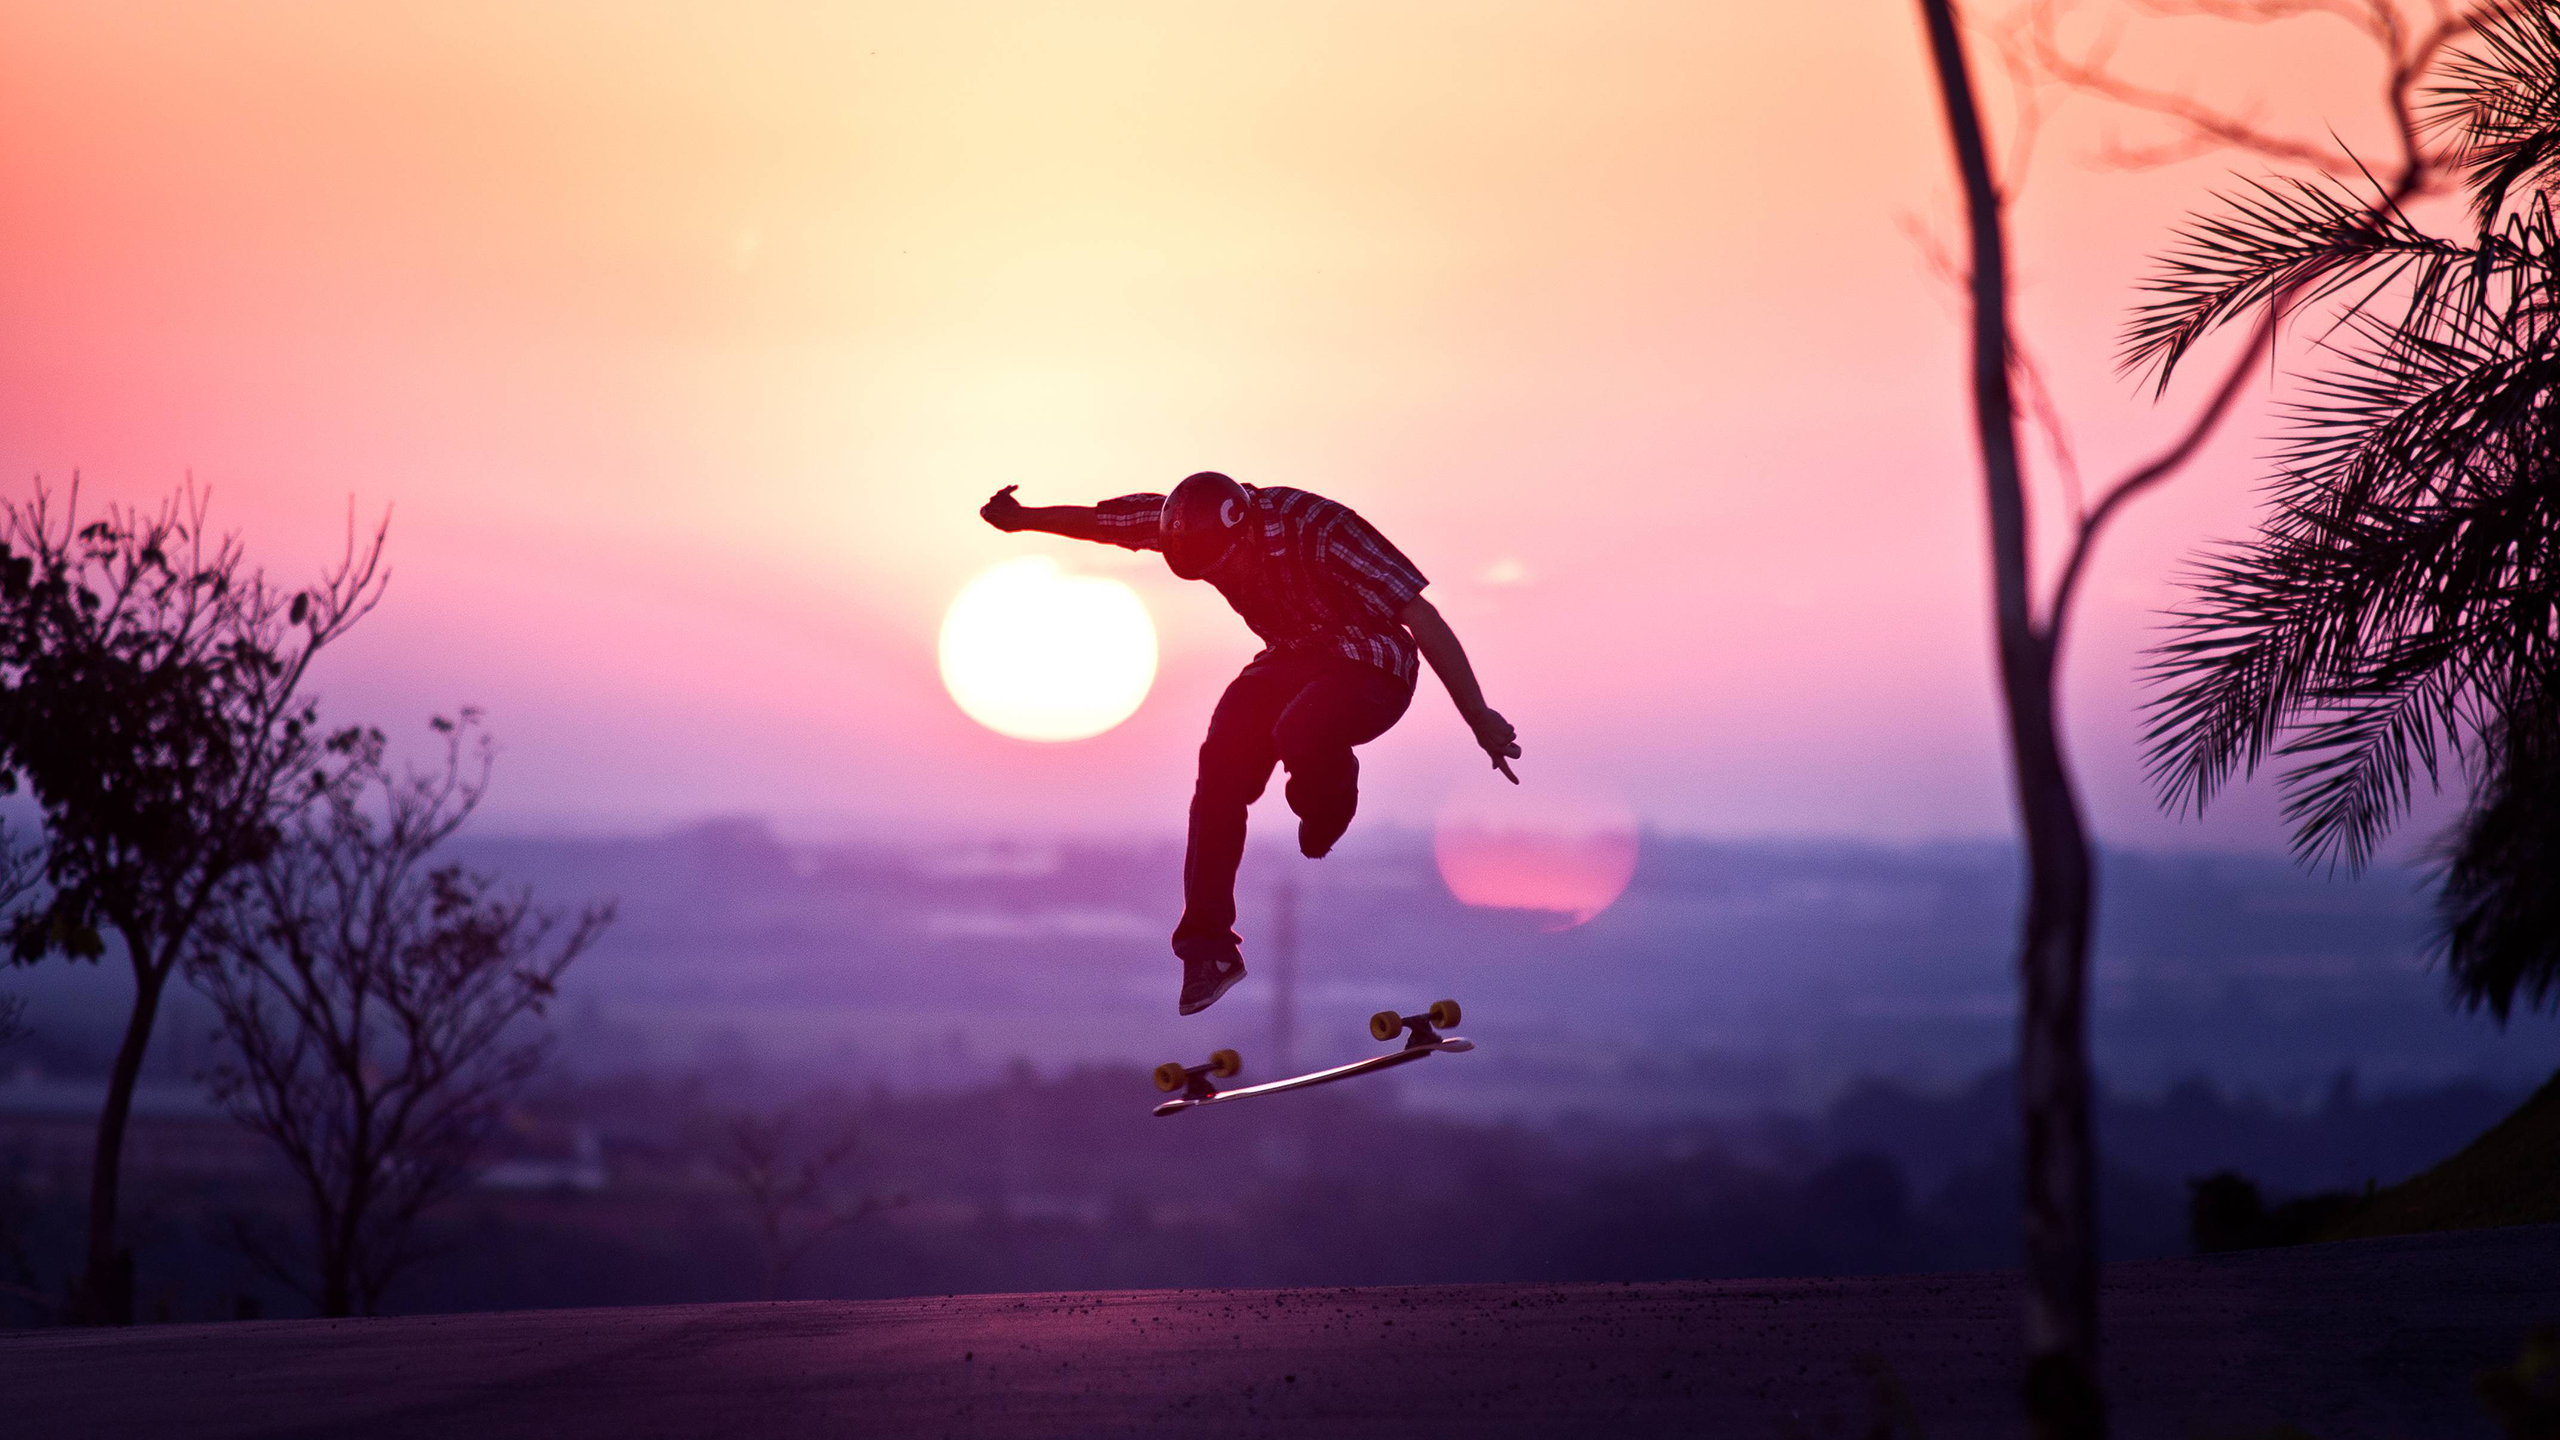 Skate Awesome Photo | 39912611 Skate Wallpapers, 2560x1440